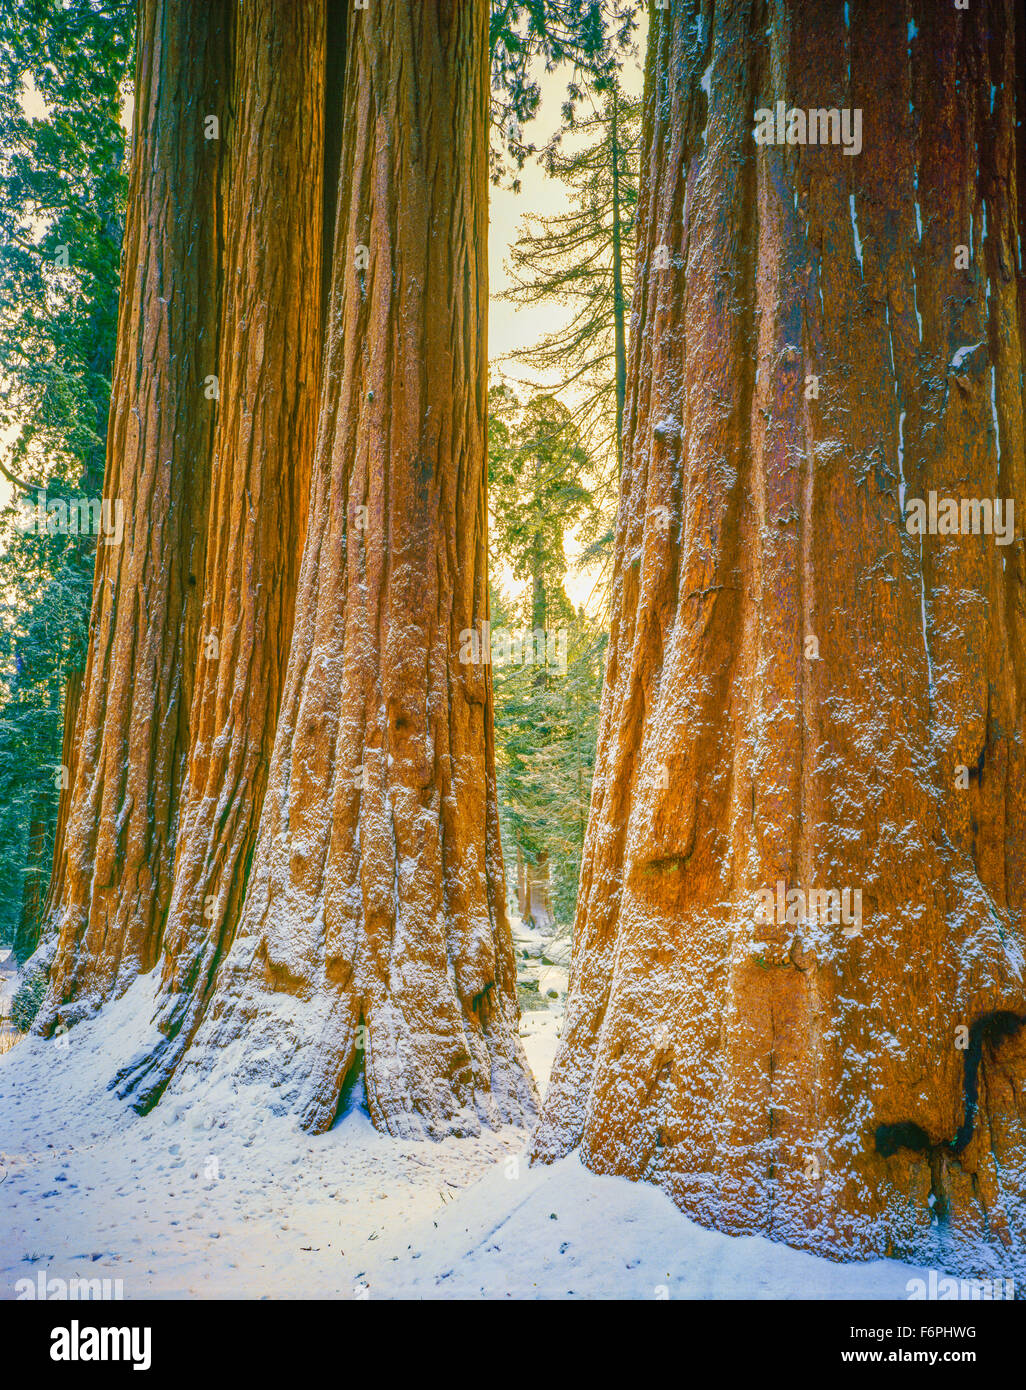 Sequoia images dans la neige, Sequoia National Park, Californie, la Sierra Nevada, plus gros arbres du monde Photo Stock